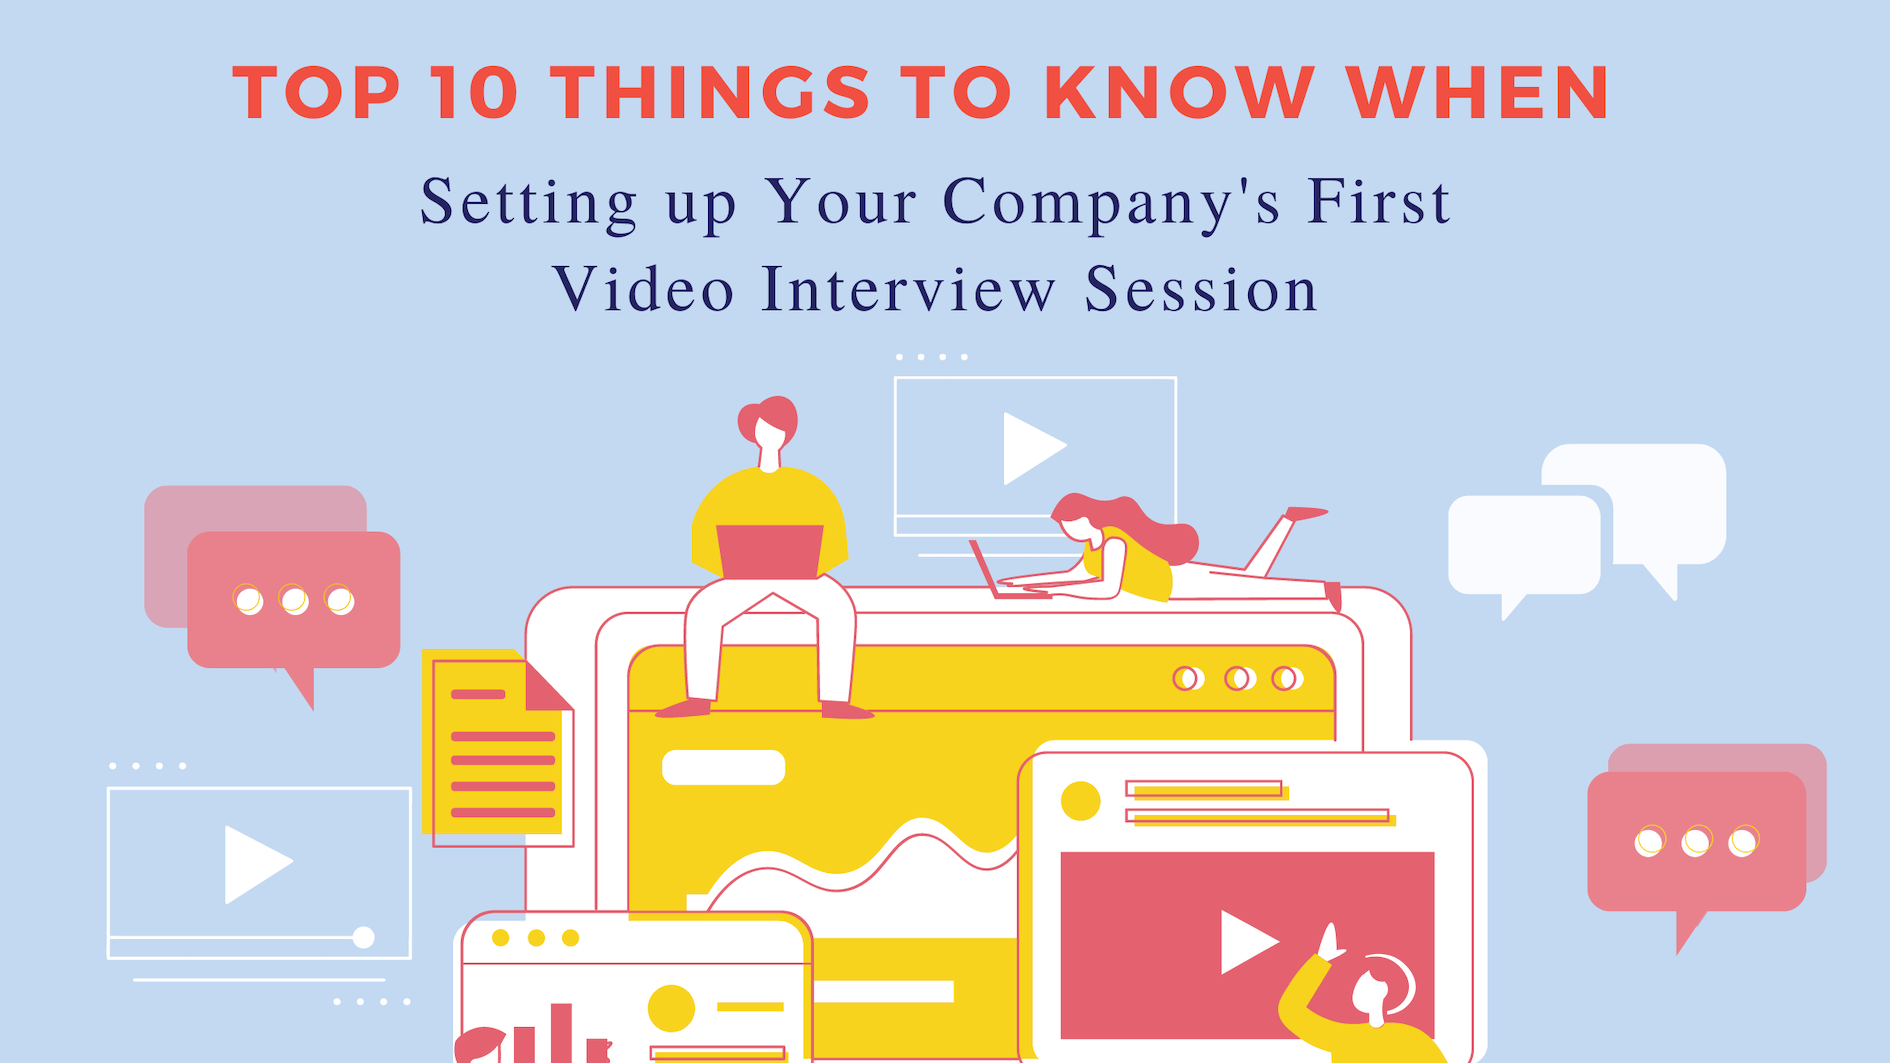 Top 10 Tips For Setting up Your First Video Interview Session